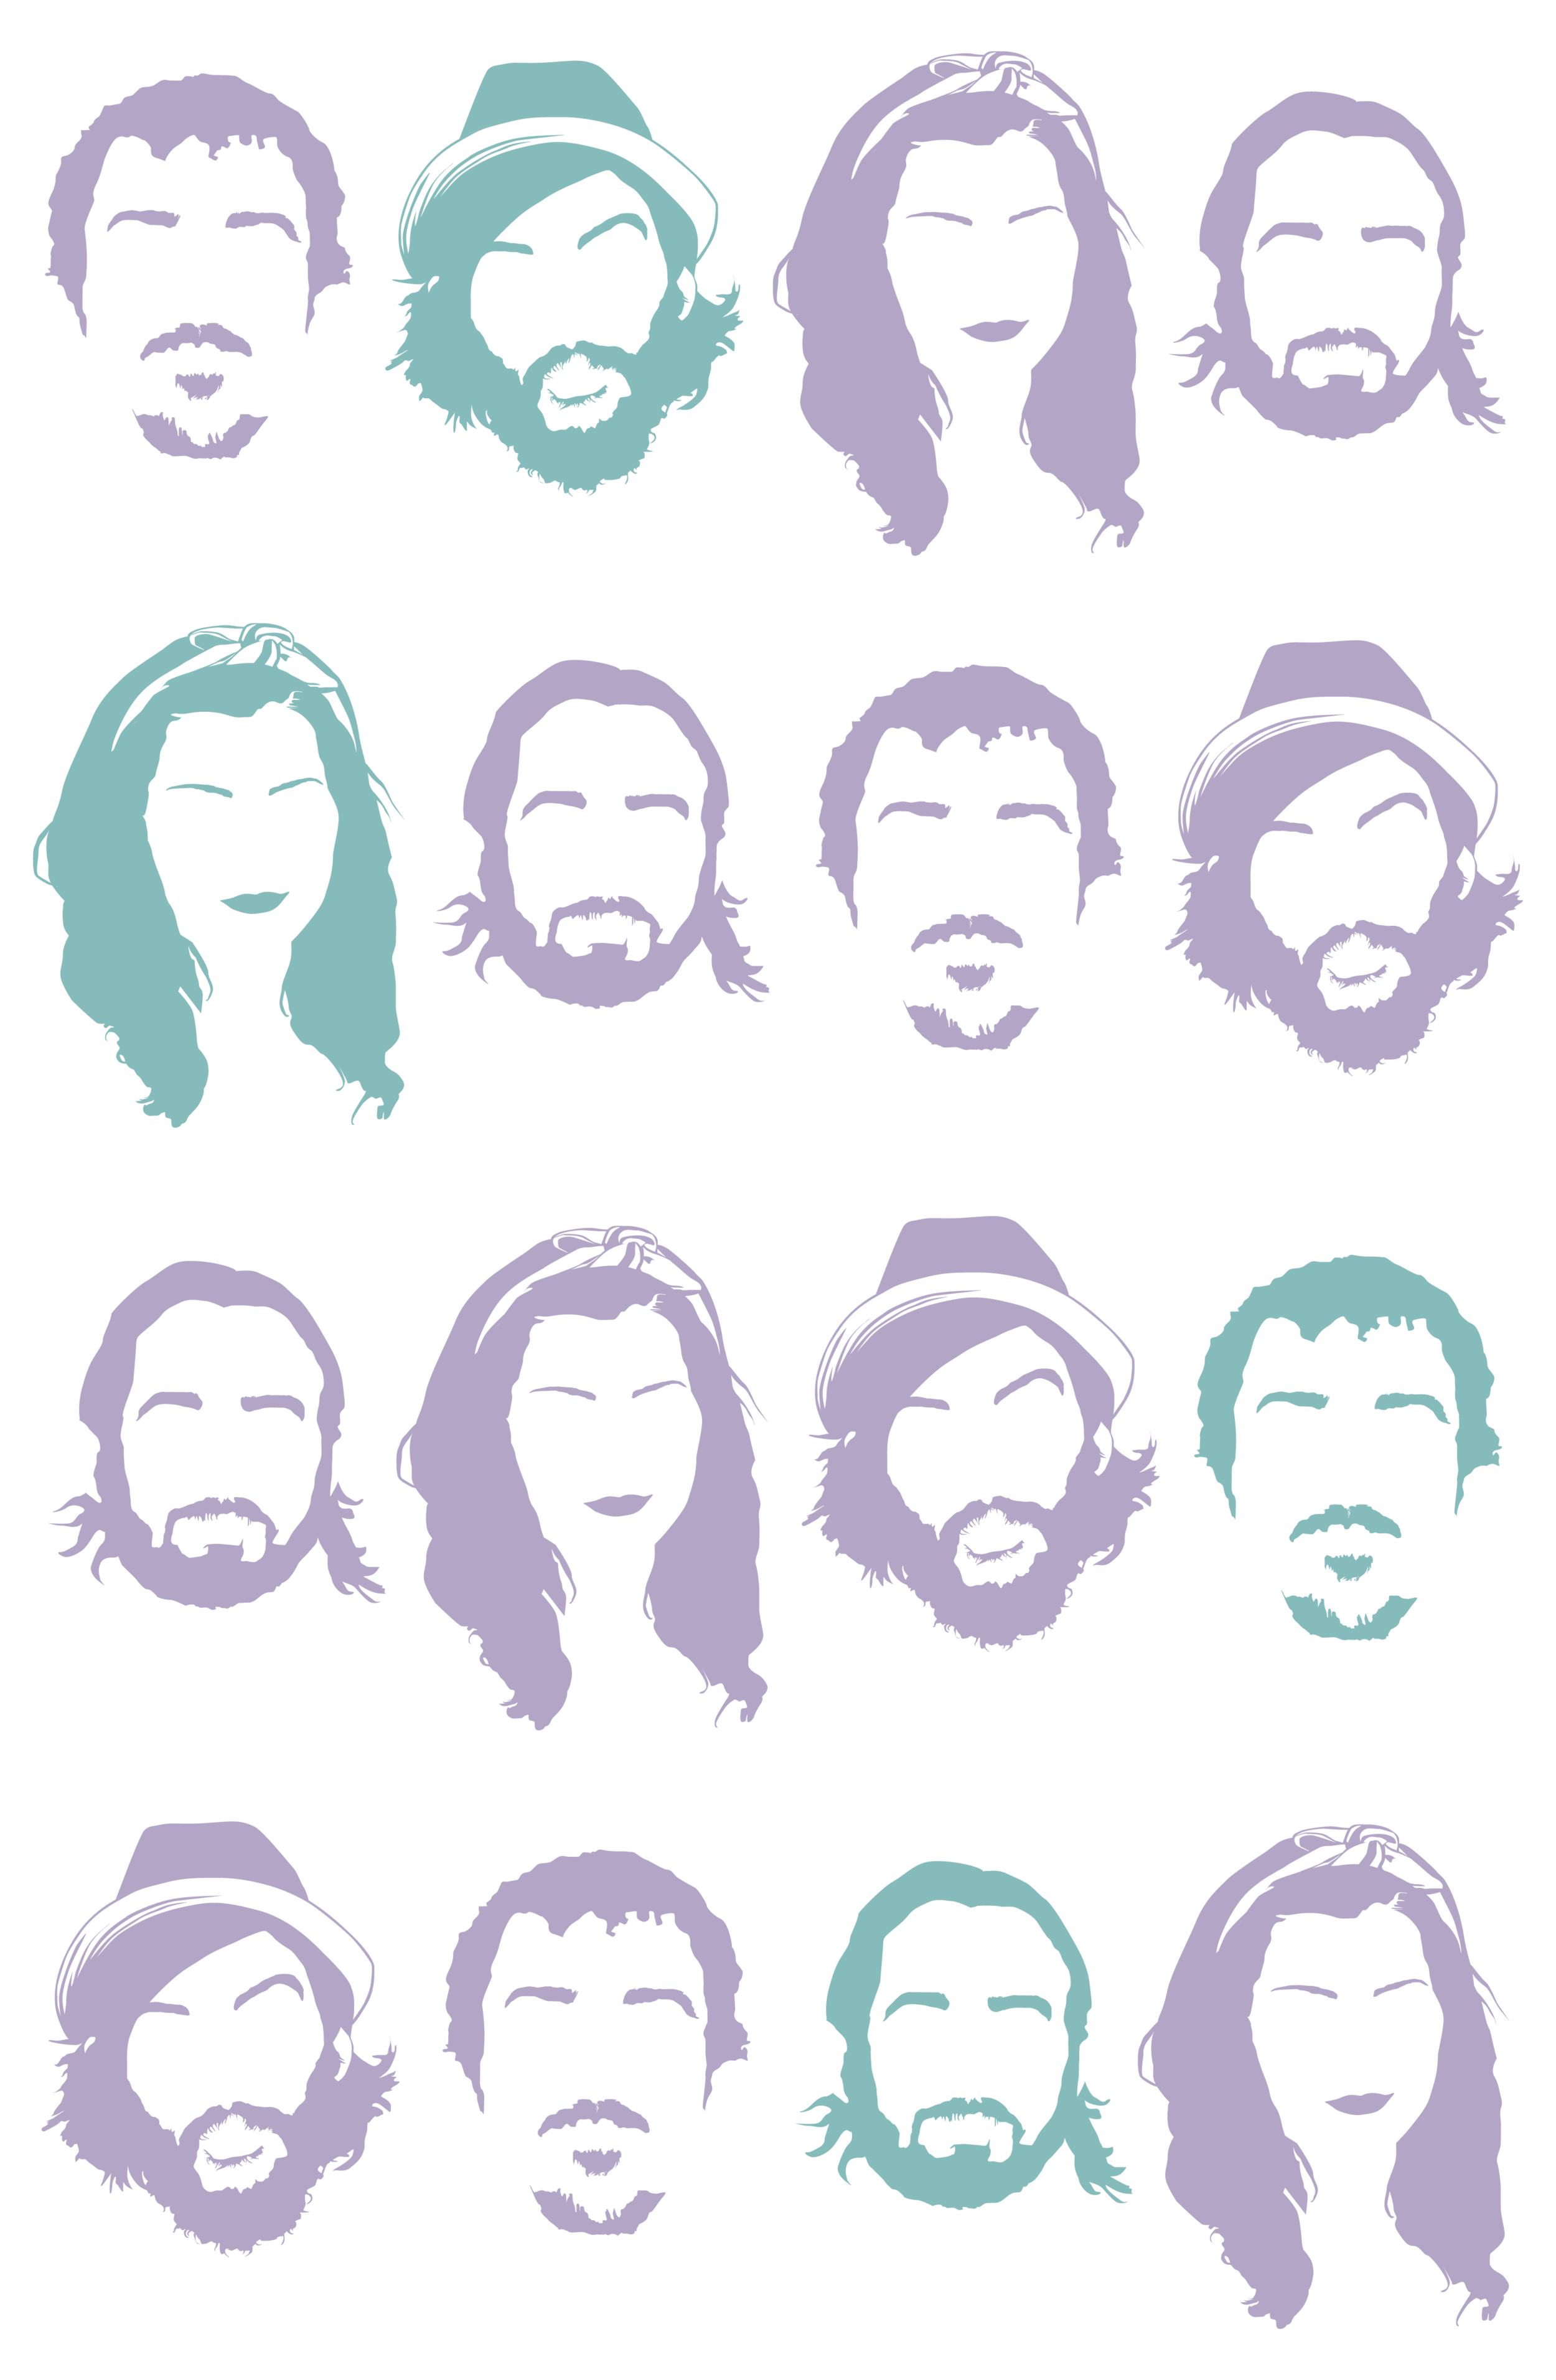 HEXheads-02.png